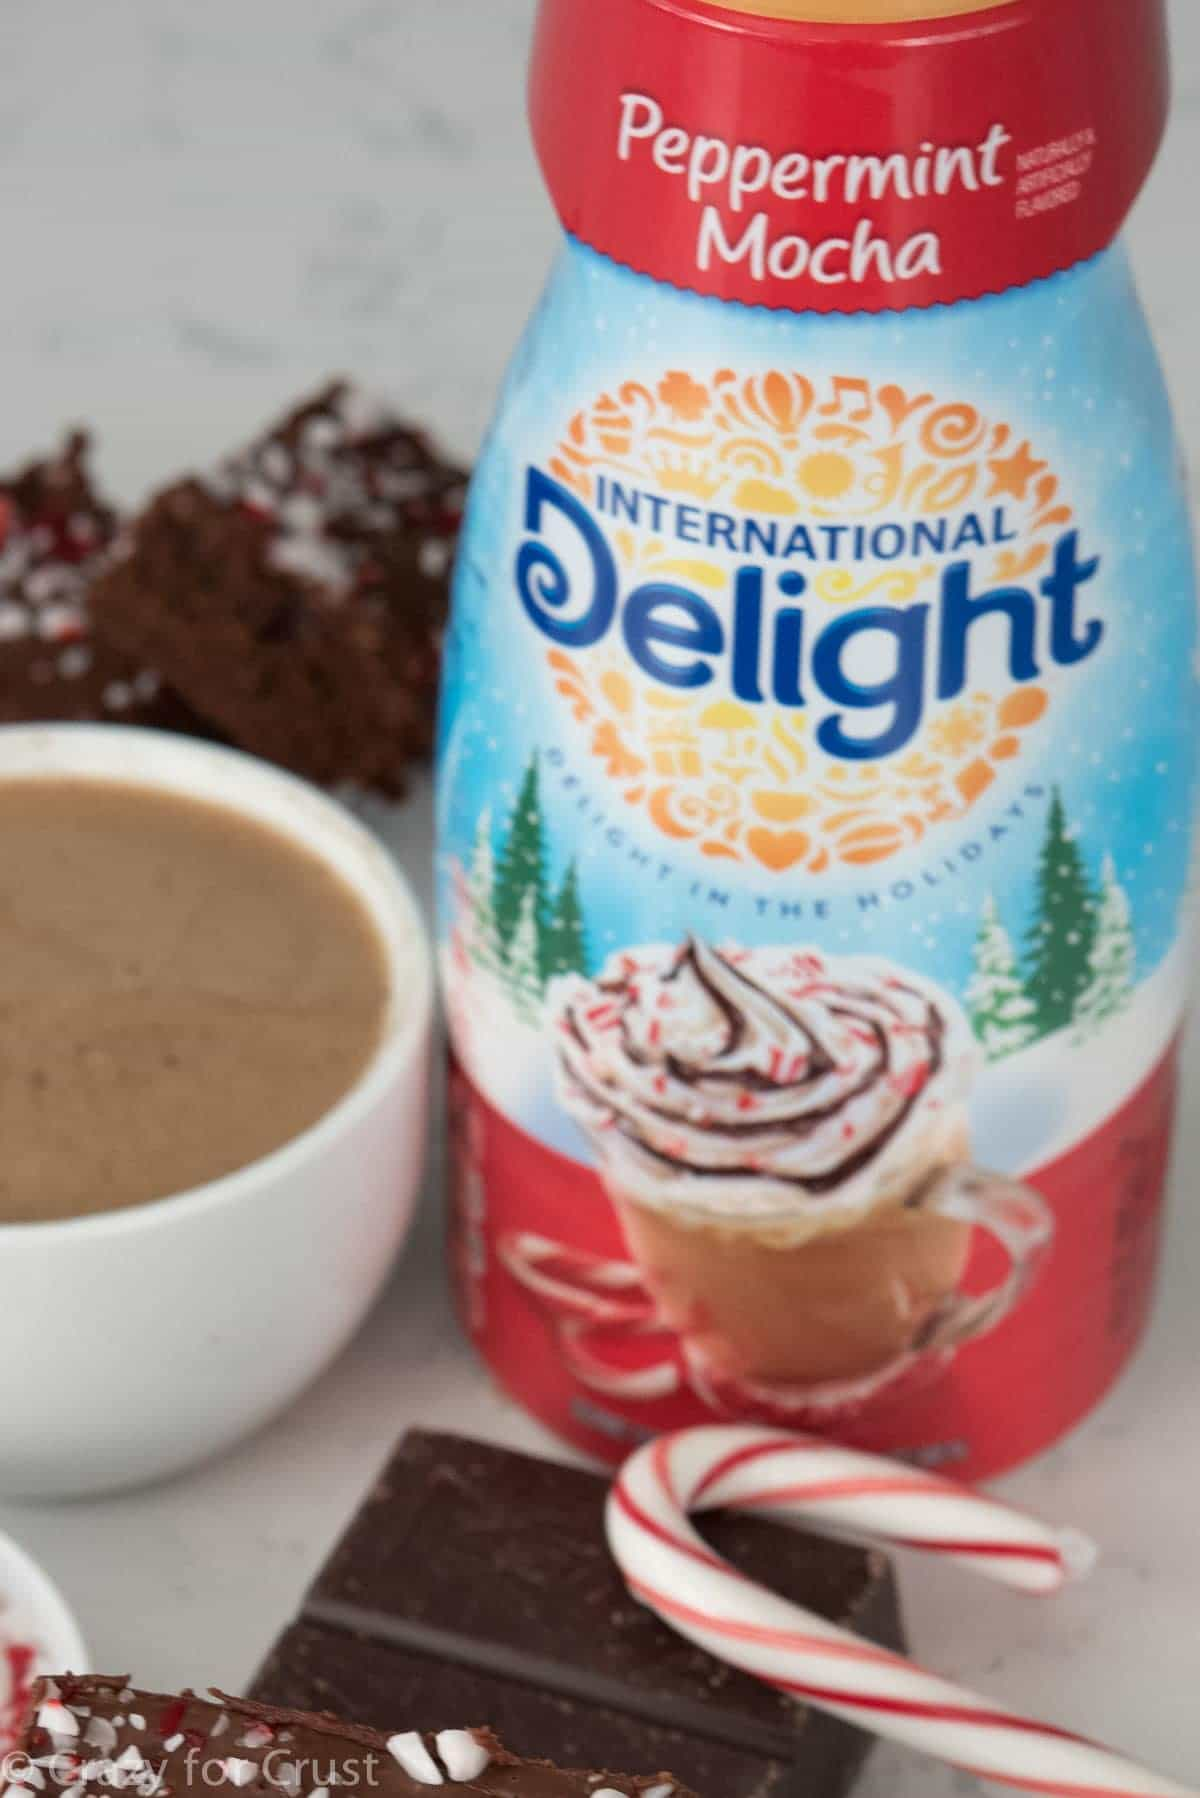 Peppermint Mocha Intertnational Delight